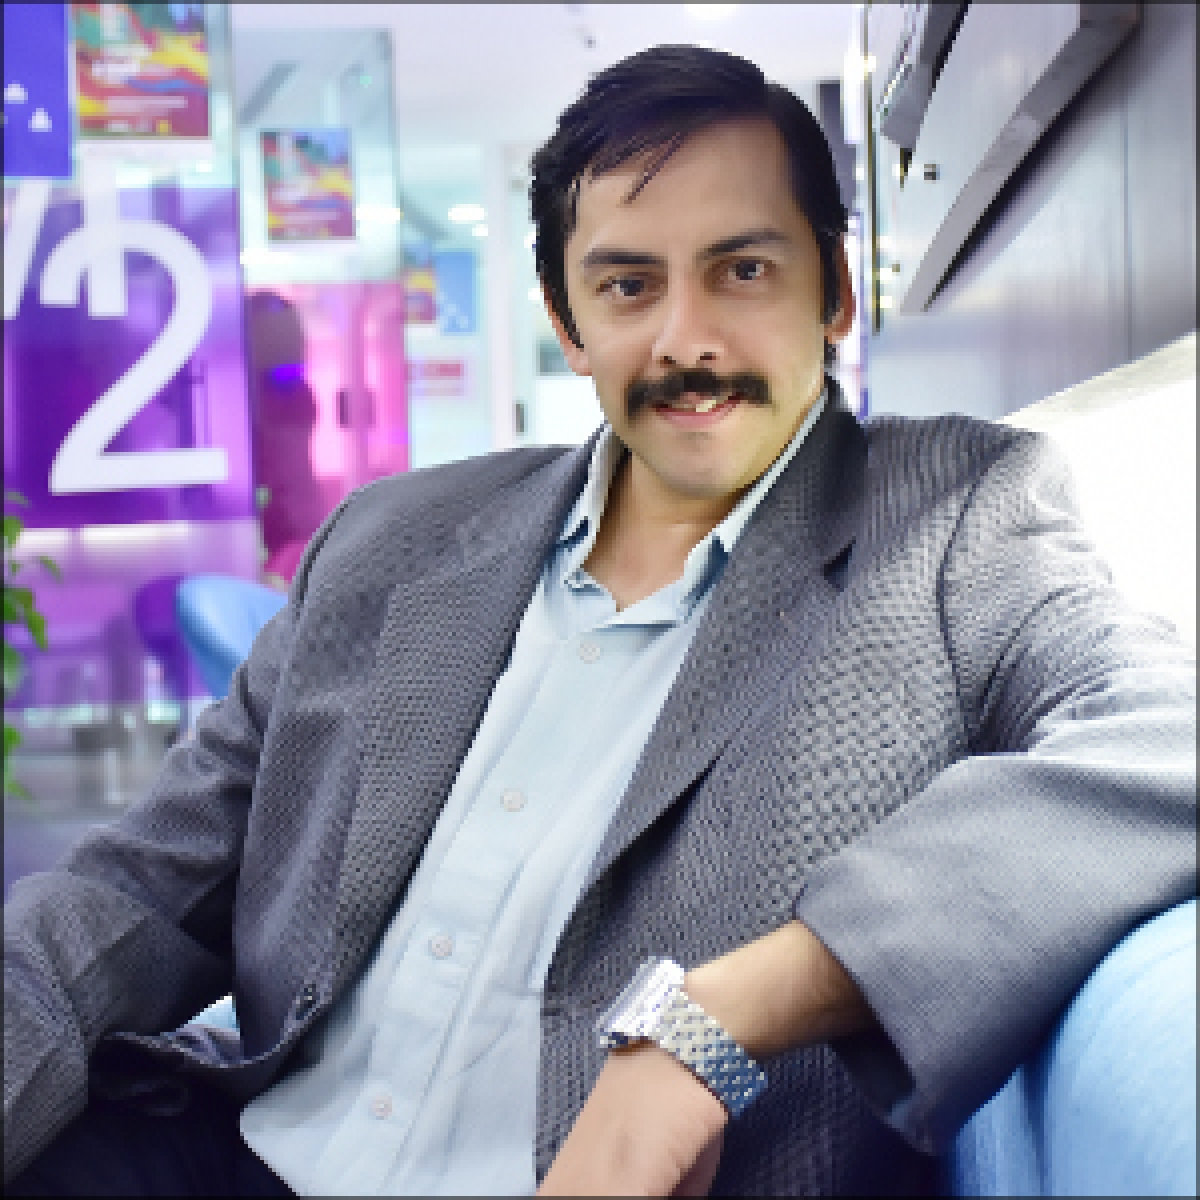 To Mediacom's K Srinivas Rao, the biggest leap is about learning everyday